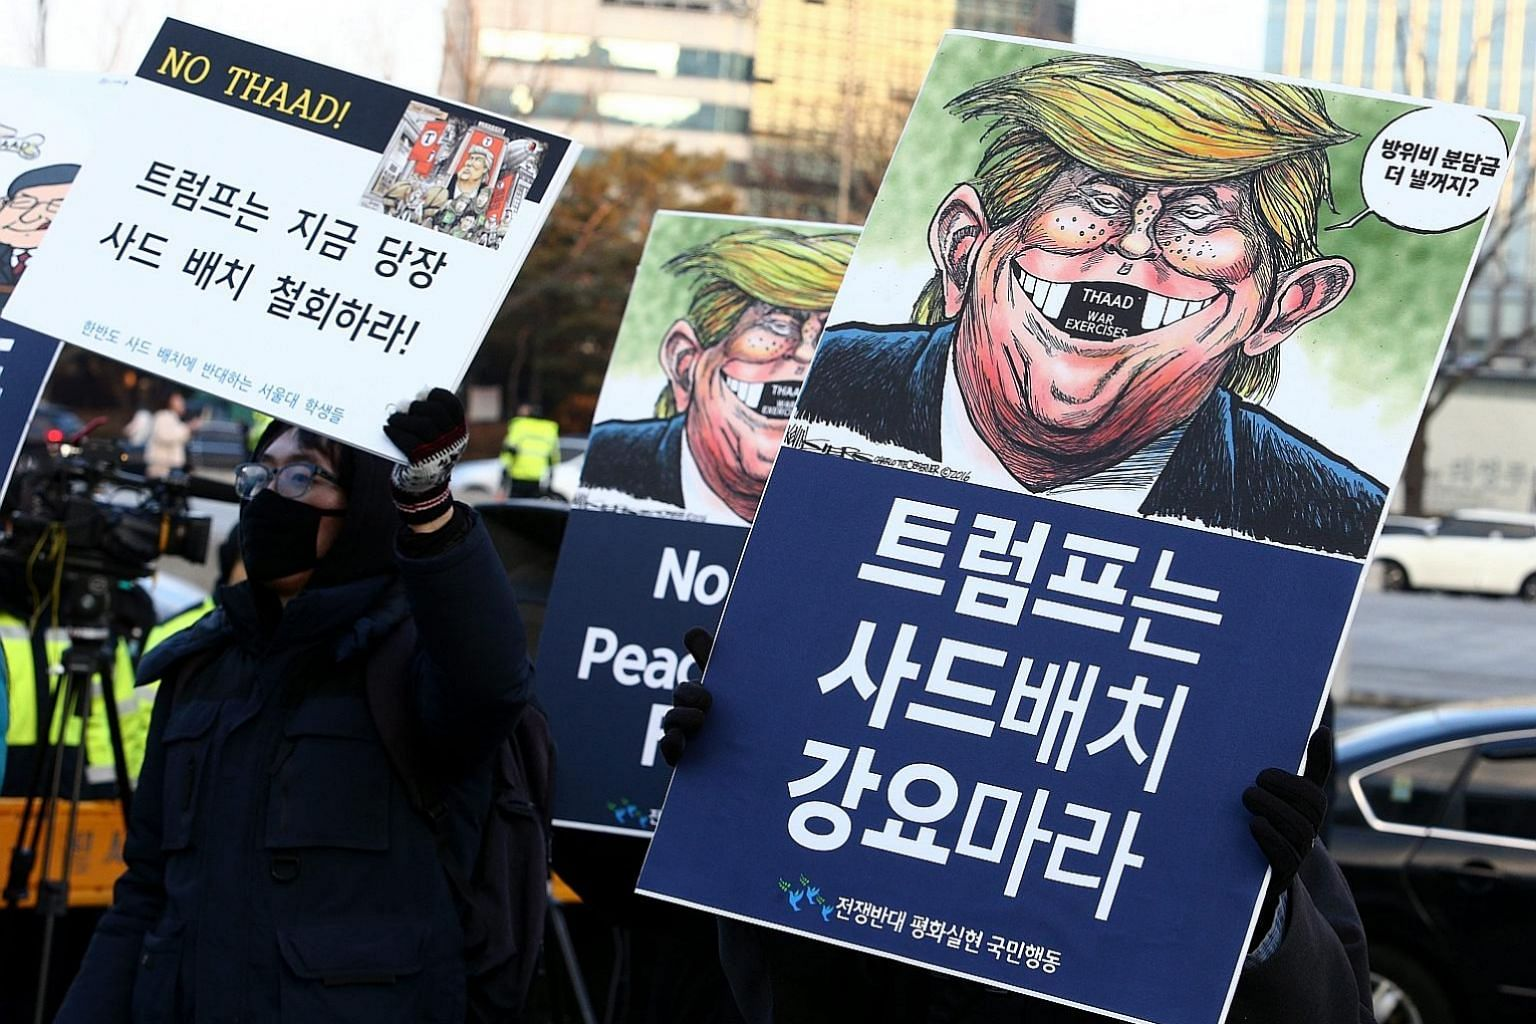 South Koreans in Seoul rallying on Thursday against a meeting between US Defence Secretary James Mattis and South Korean Acting President Hwang Kyo Ahn. But the country's alliance with the US goes far beyond military issues and the significance shoul